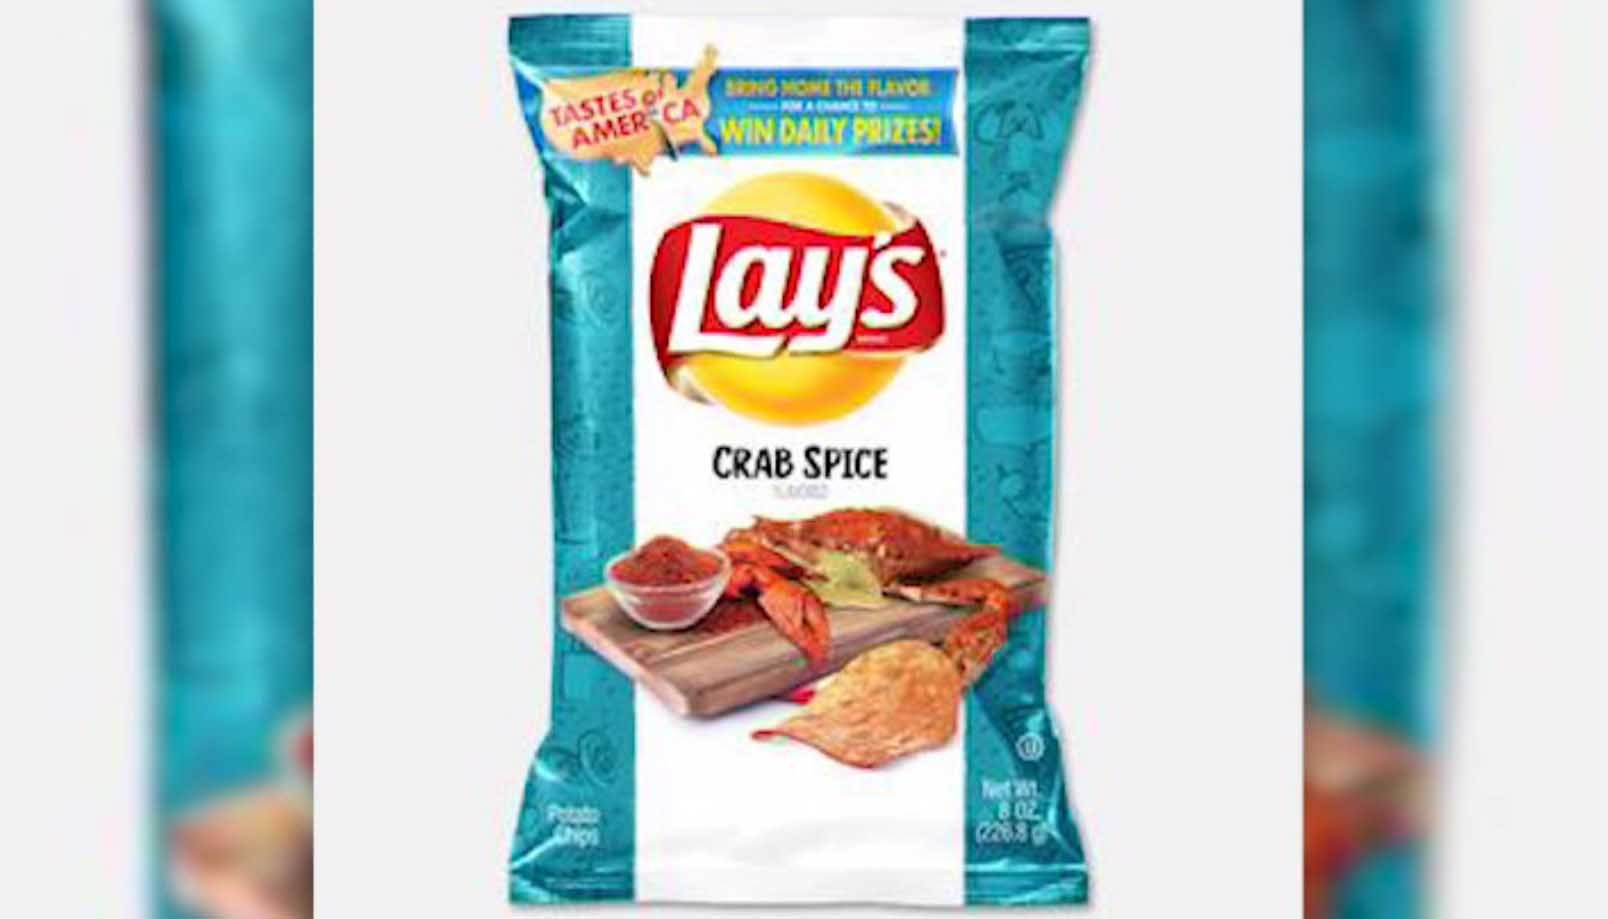 Lay's is releasing eight new potato chip flavors representing local cuisines across the U.S. (Source: Lay's via CNN)